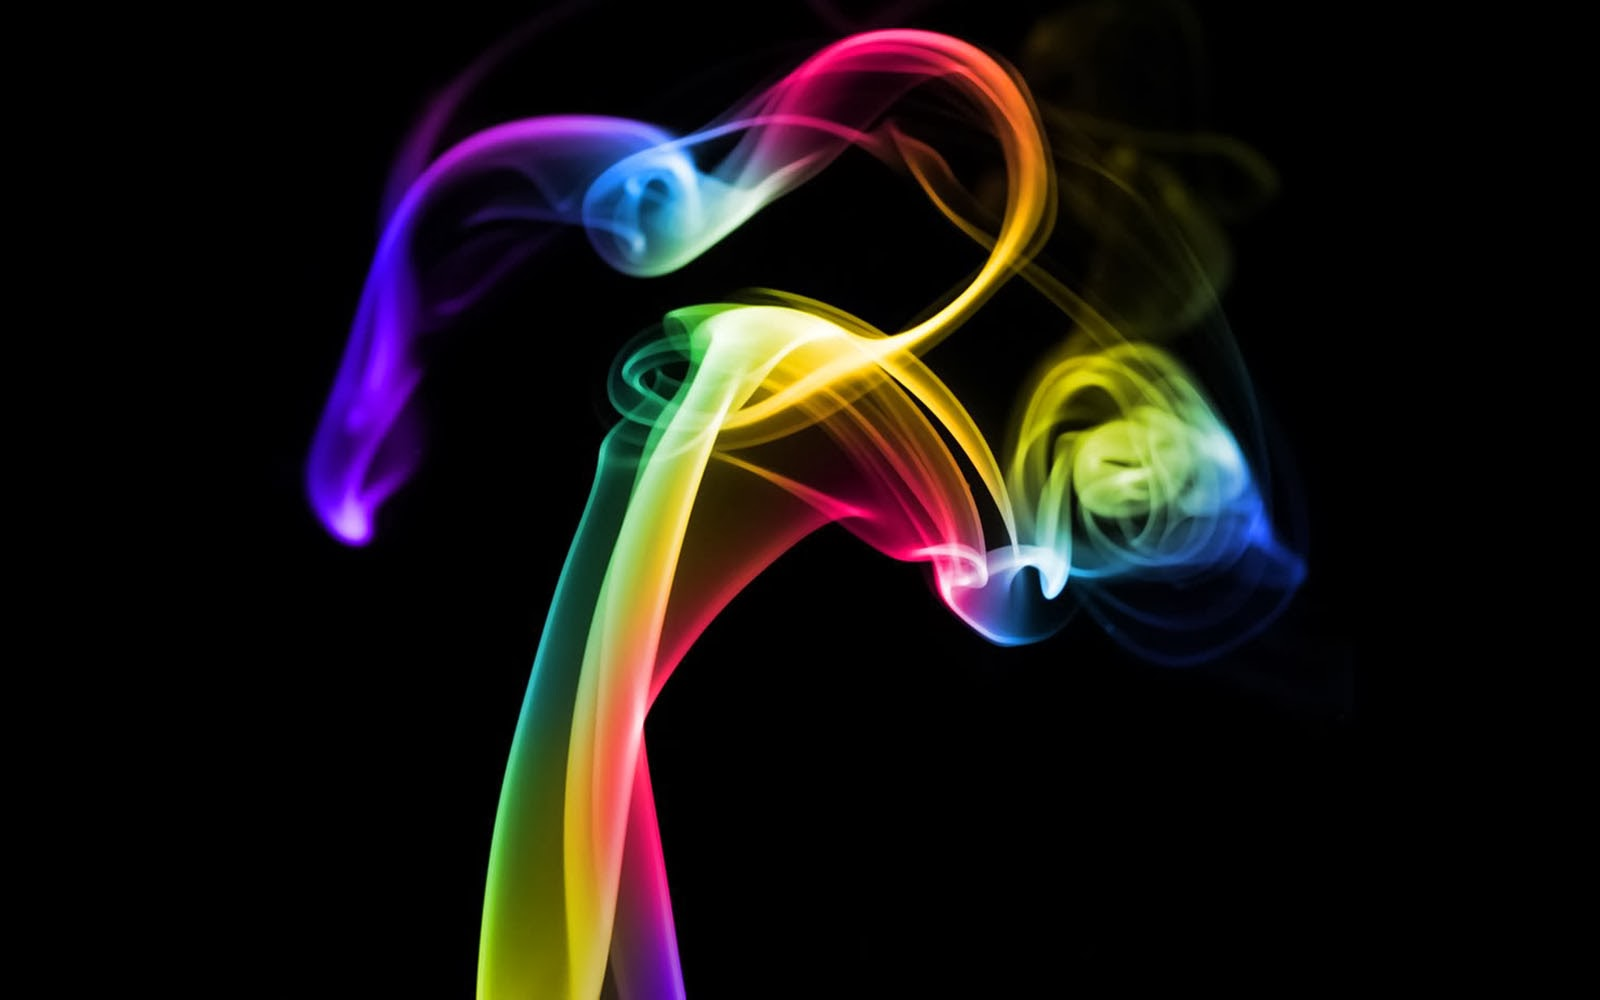 3d Wallpaper New York City Wallpapers Colorful Smoke Wallpapers